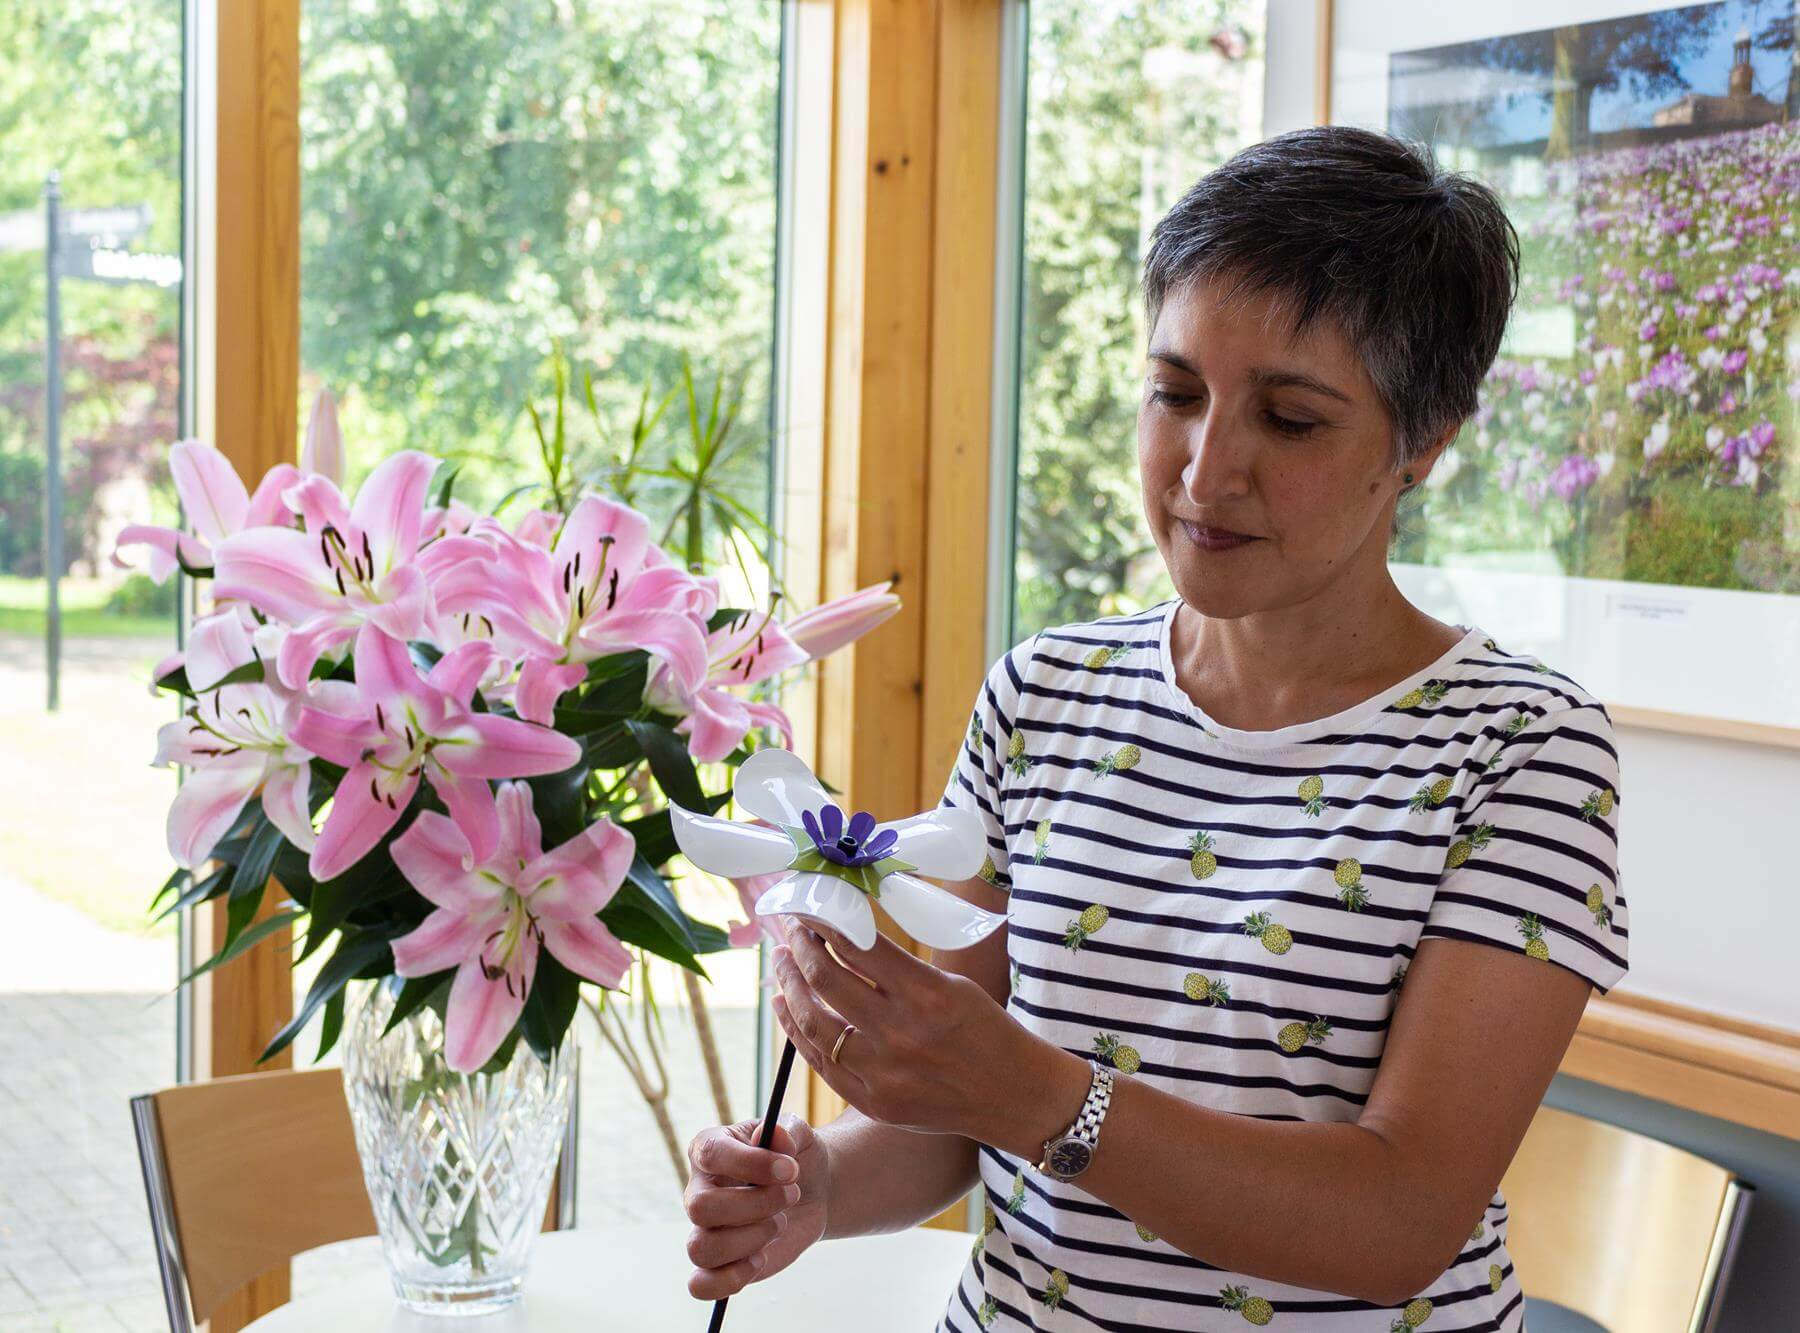 Women holding a white iron flower with pink flowers in the background